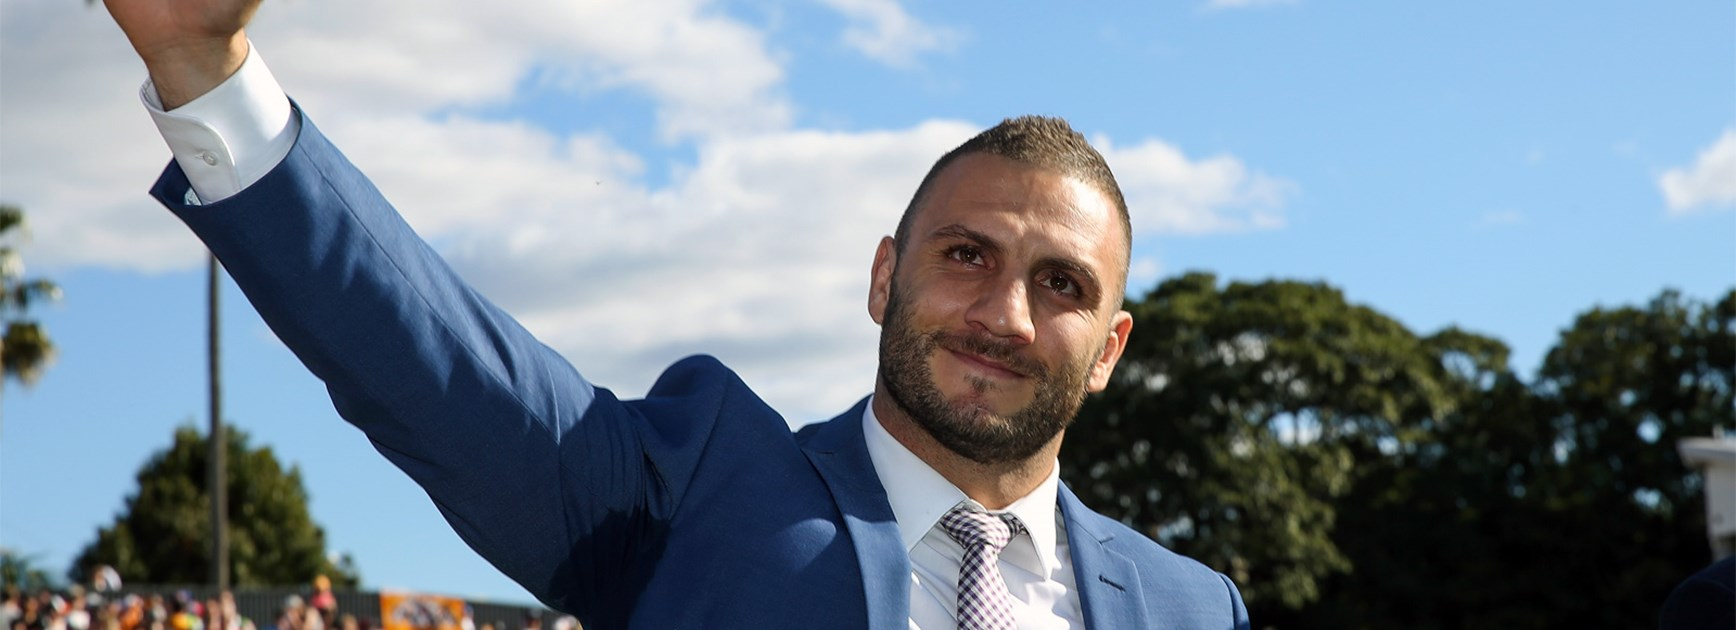 Robbie Farah waves to the crowd at half-time of the Tigers' final game of the 2016 season.